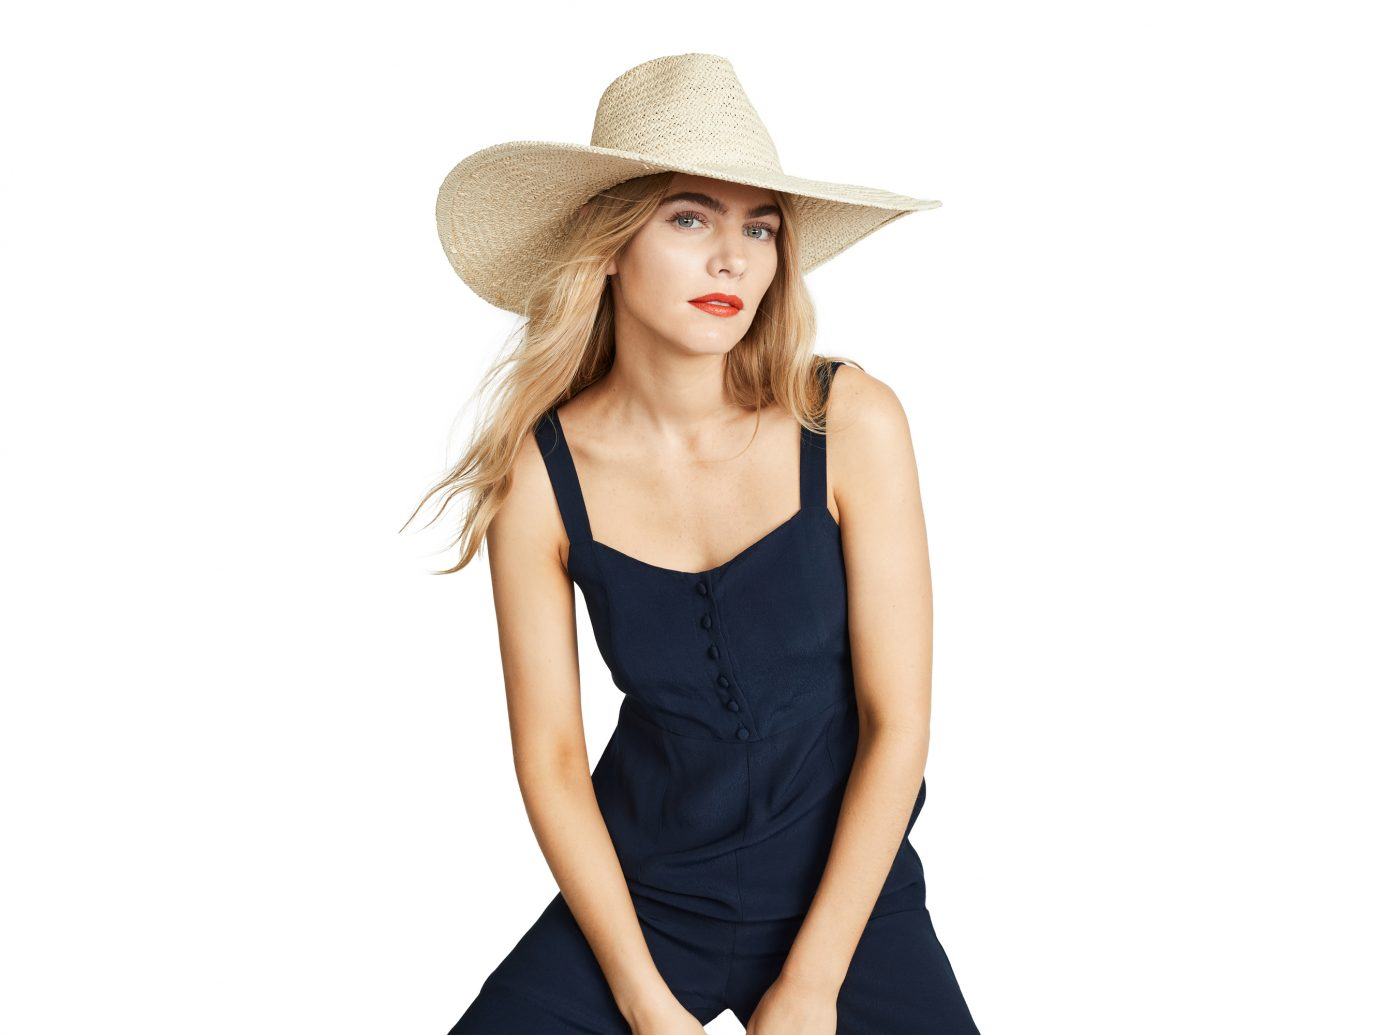 db03faaad6009f The 12 Best Spring Hat Styles to Try In 2019 | Jetsetter